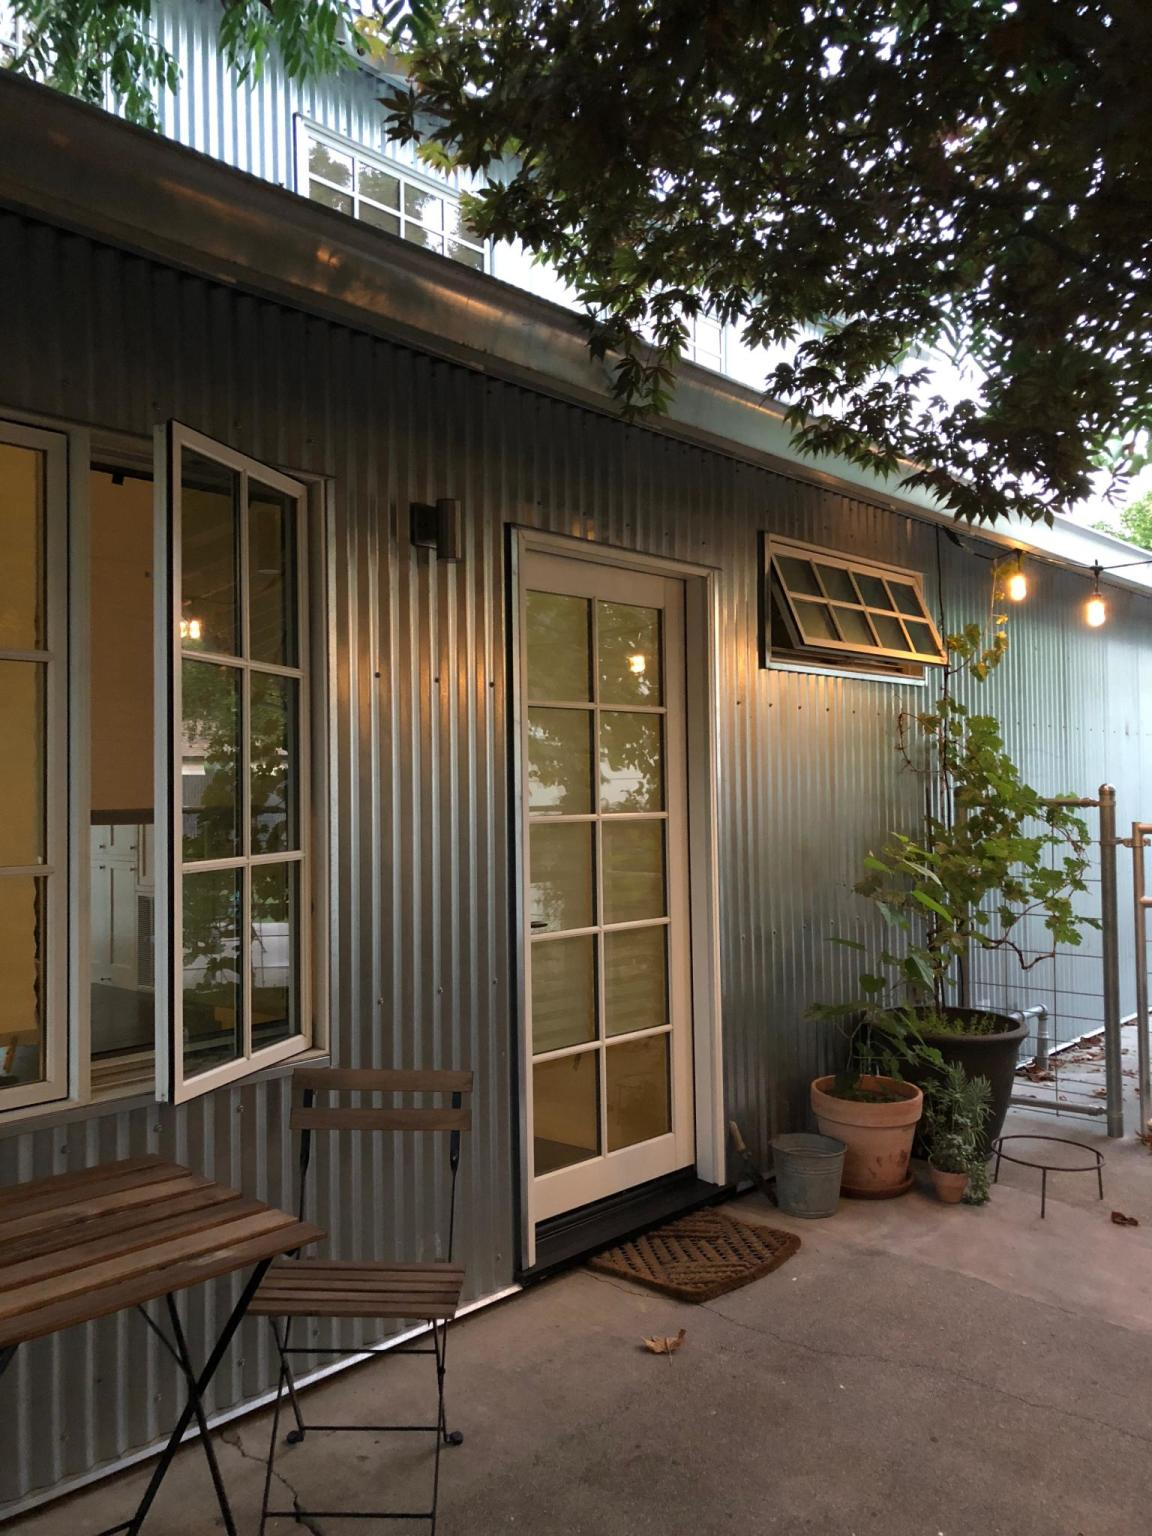 13 E Main St #A, Winters, CA 95694 For Rent | Trulia